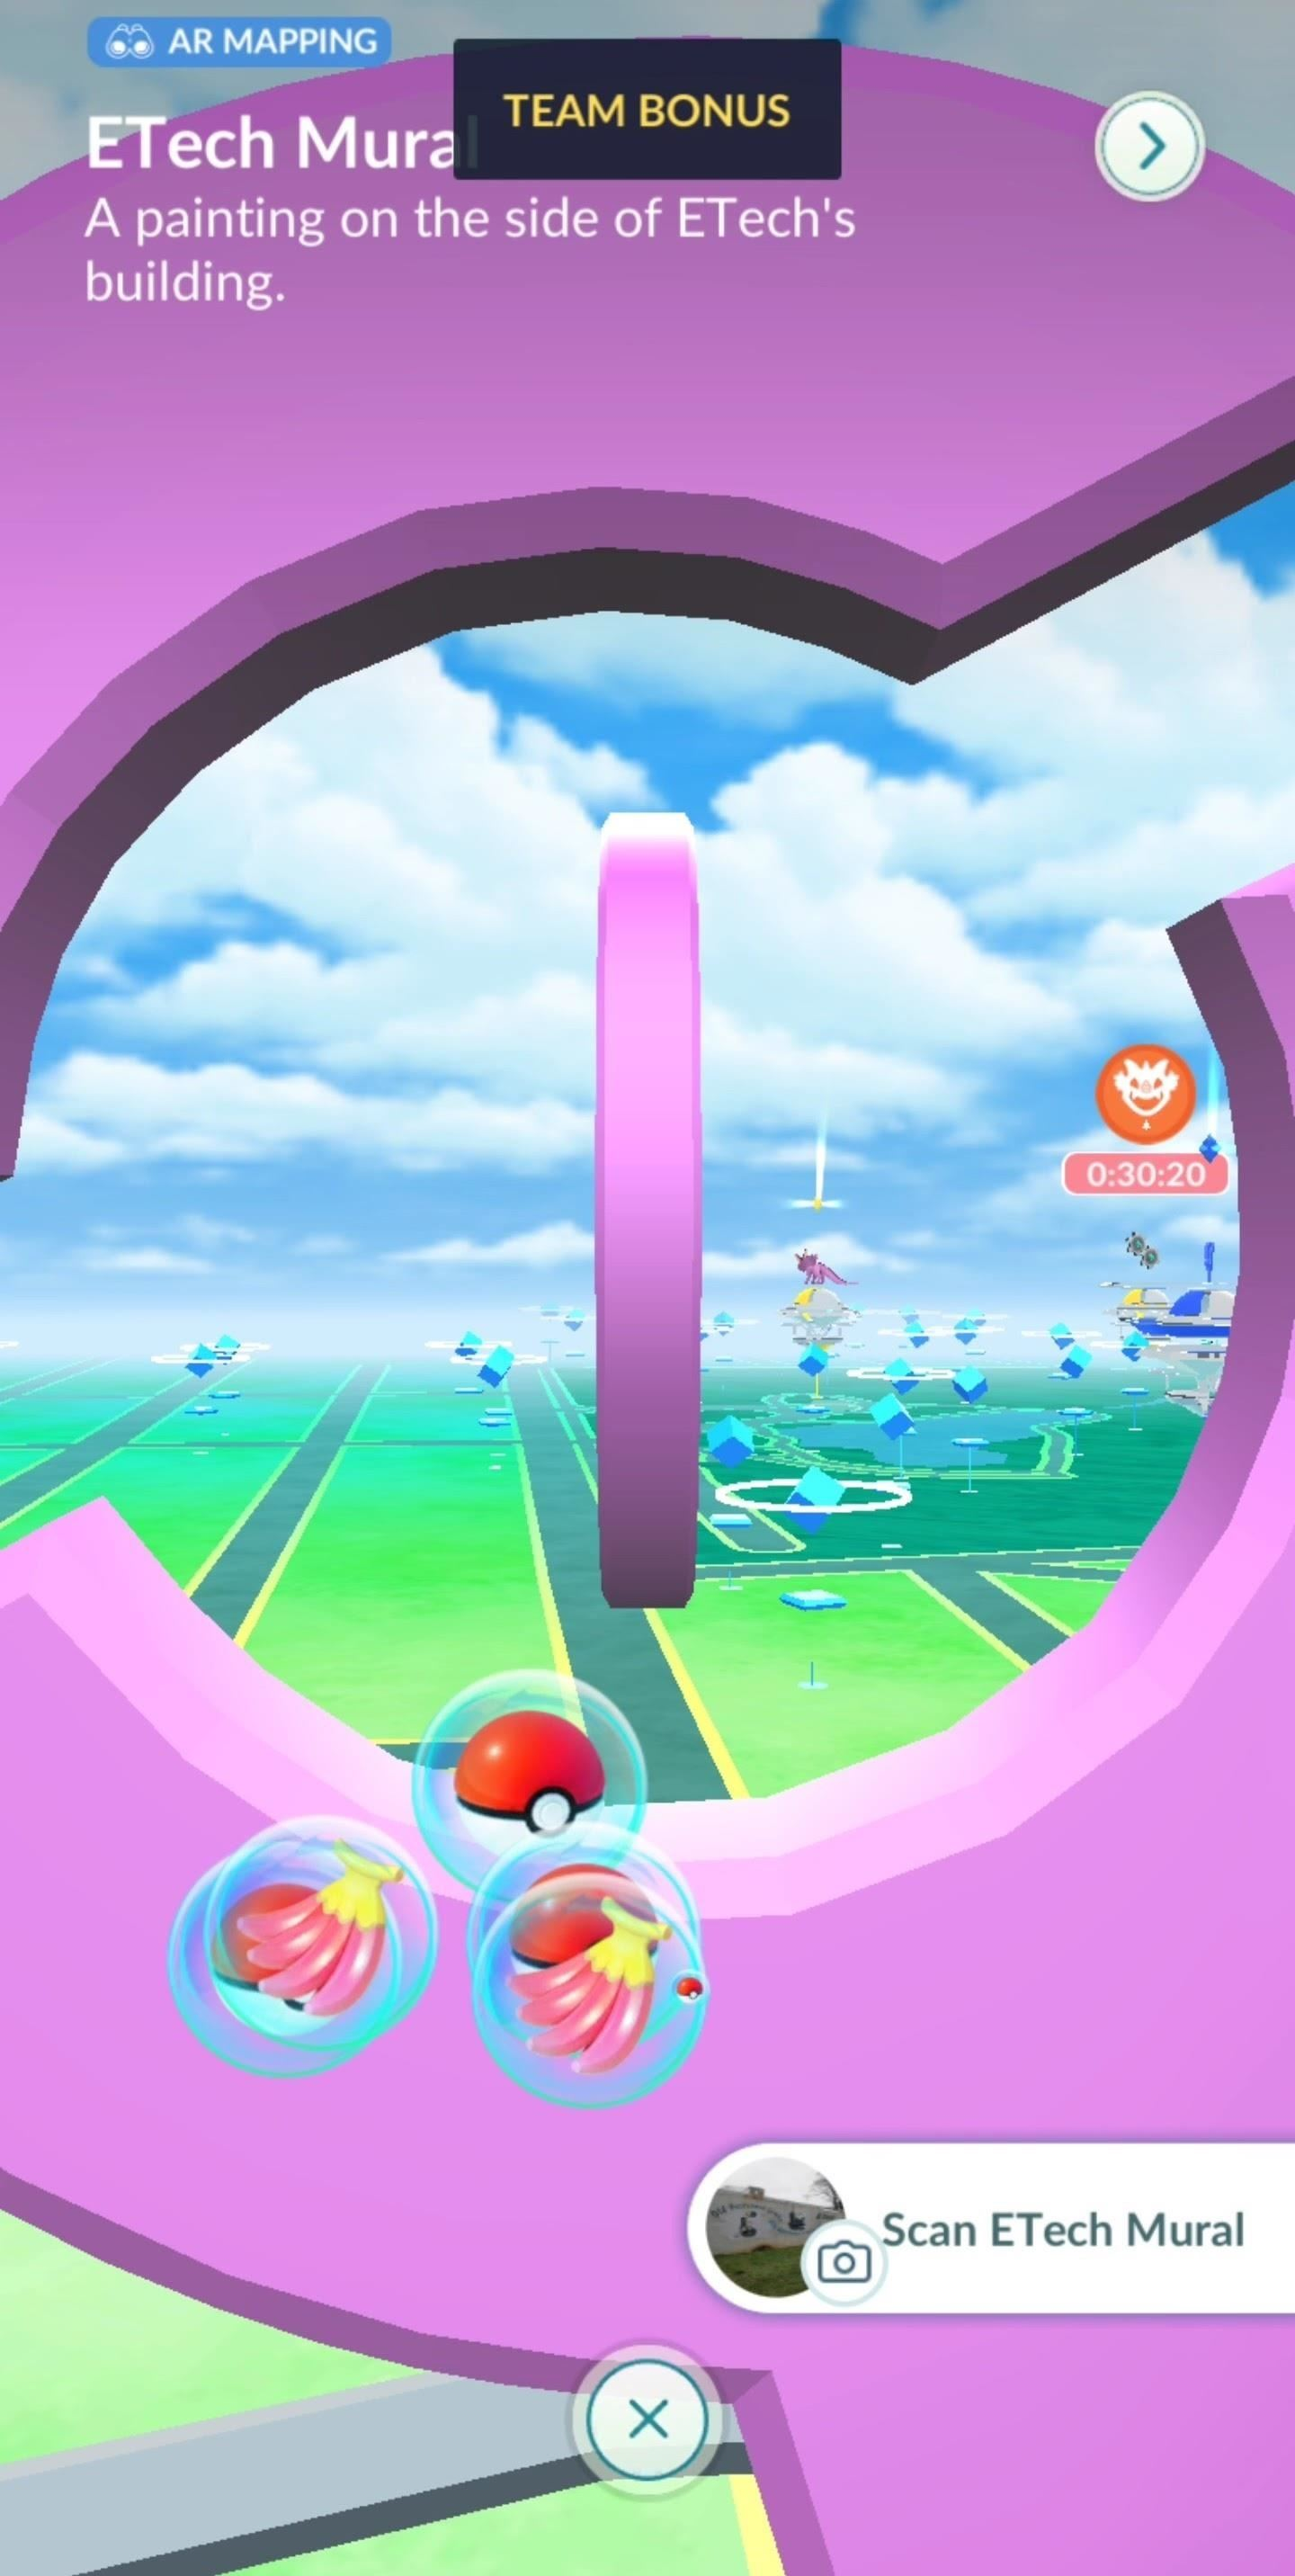 What the New AR Mapping Task in Pokémon GO Means for the Future of Augmented Reality Gaming